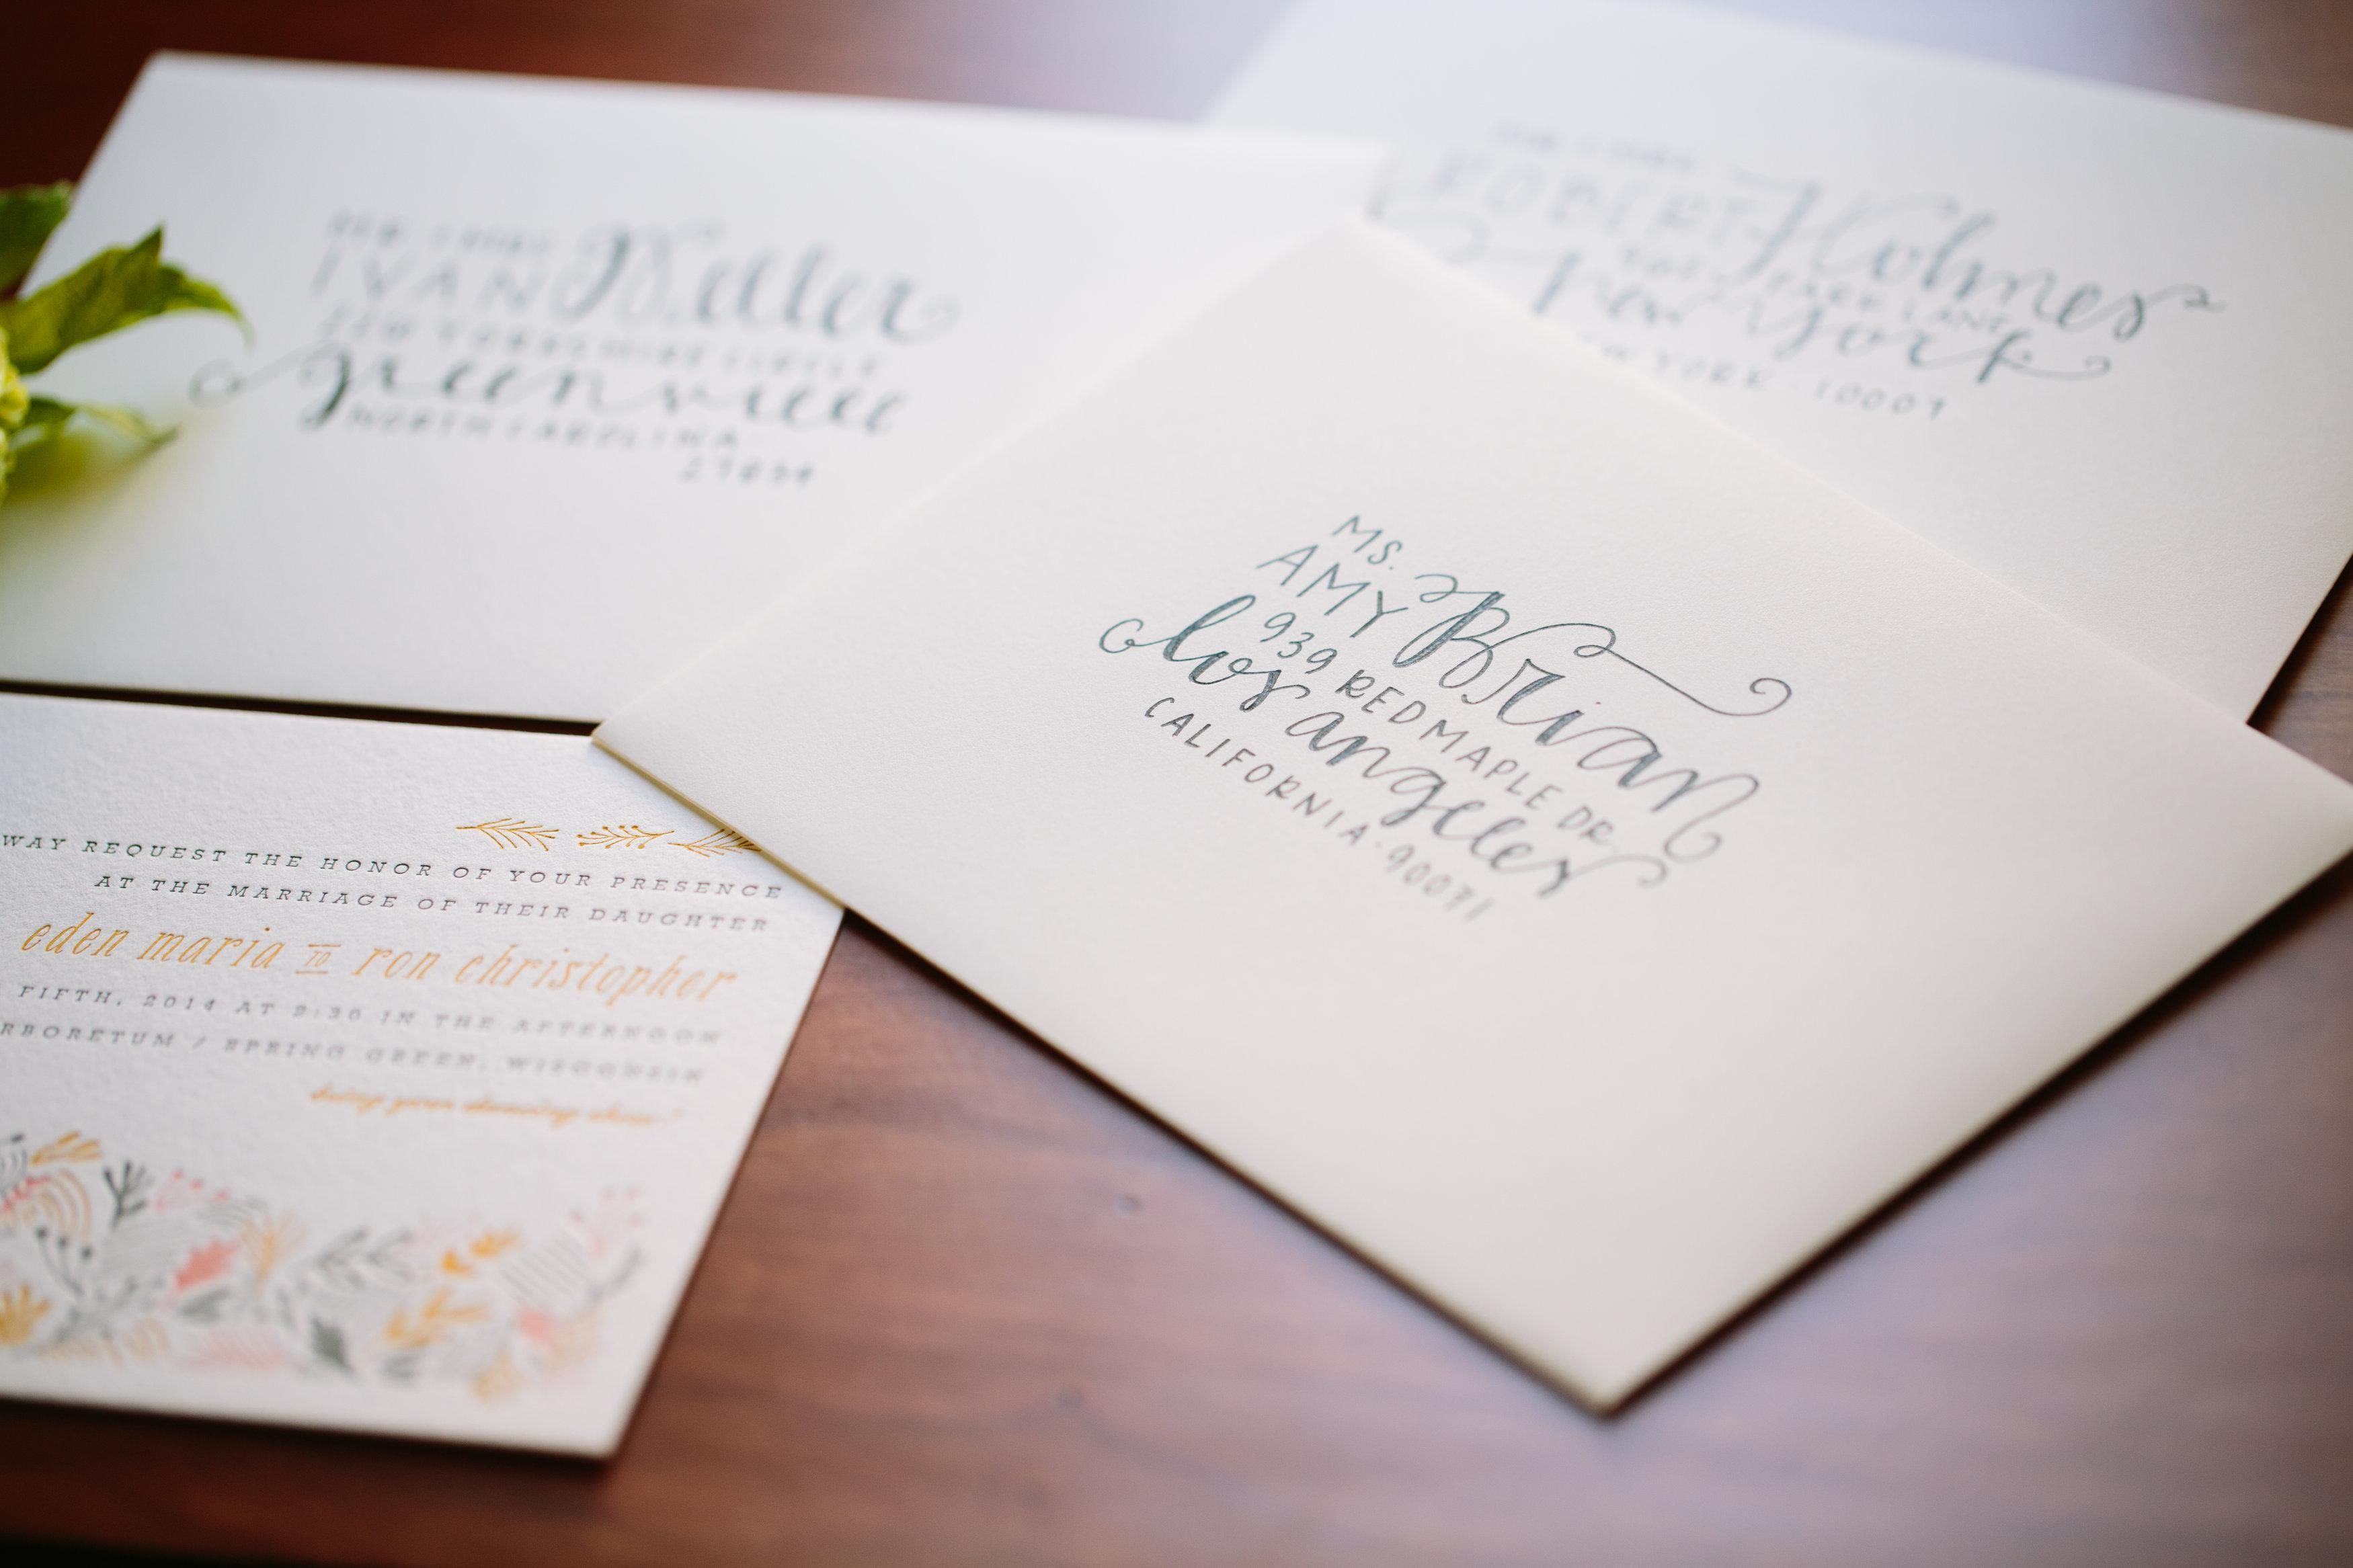 addressing-wedding-invitations-no-inner-envelope | wedding ...